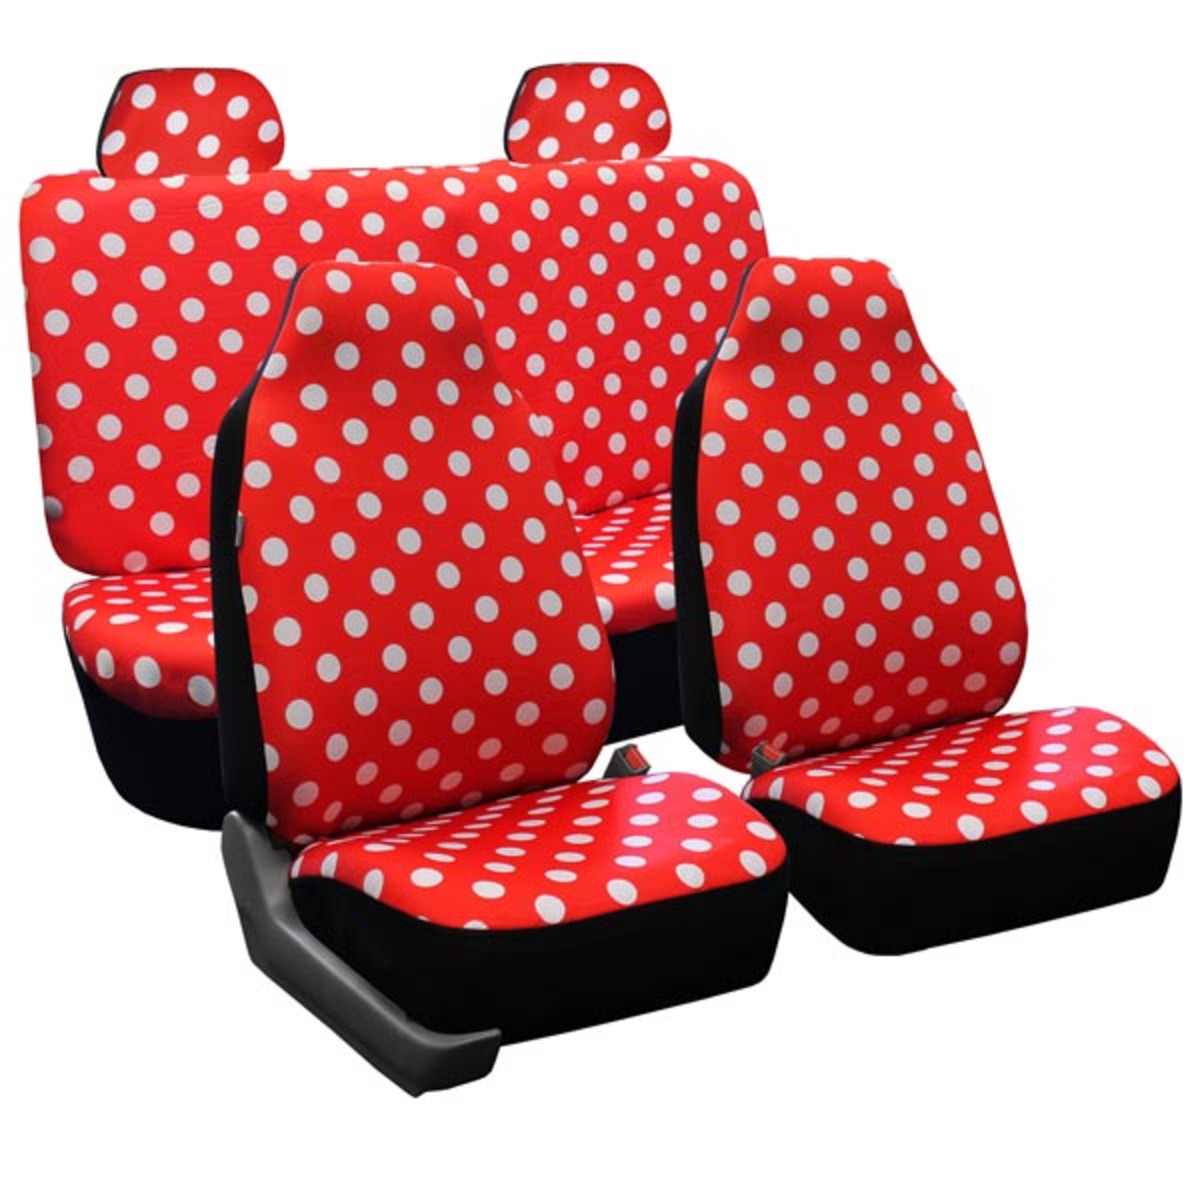 88-FB115114_red seat cover 1